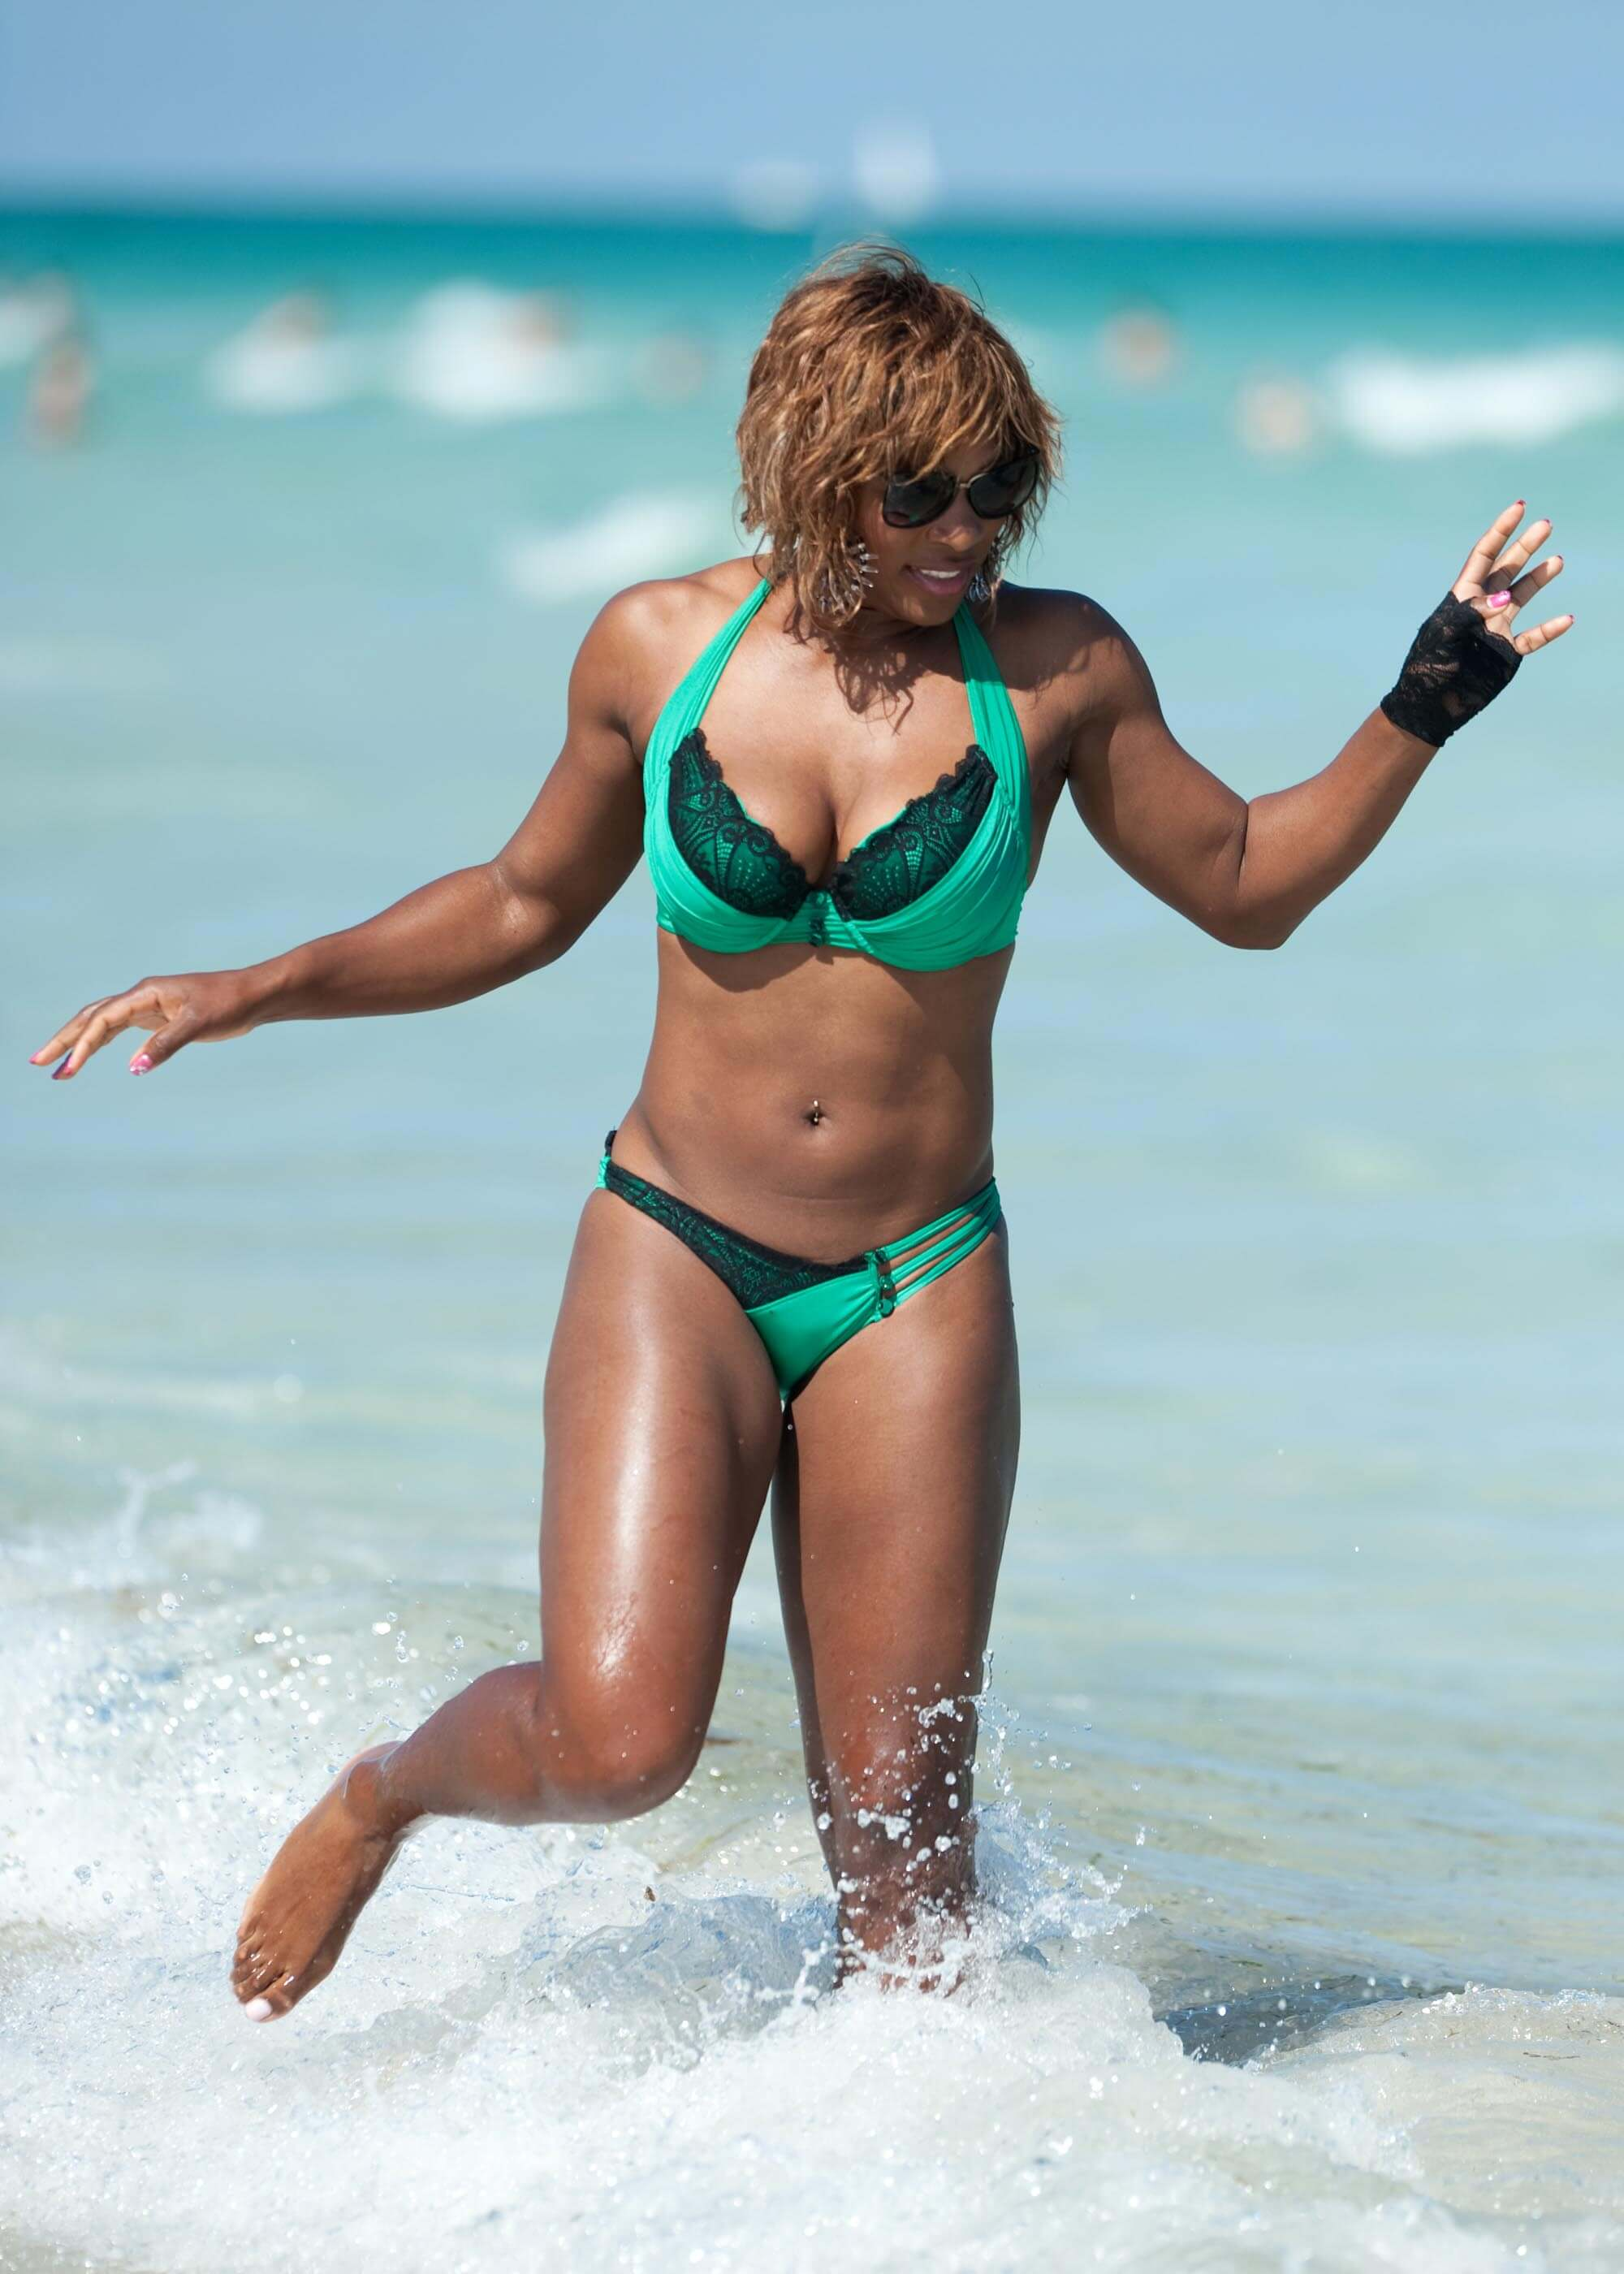 Serena Williams hot busty photo (2)